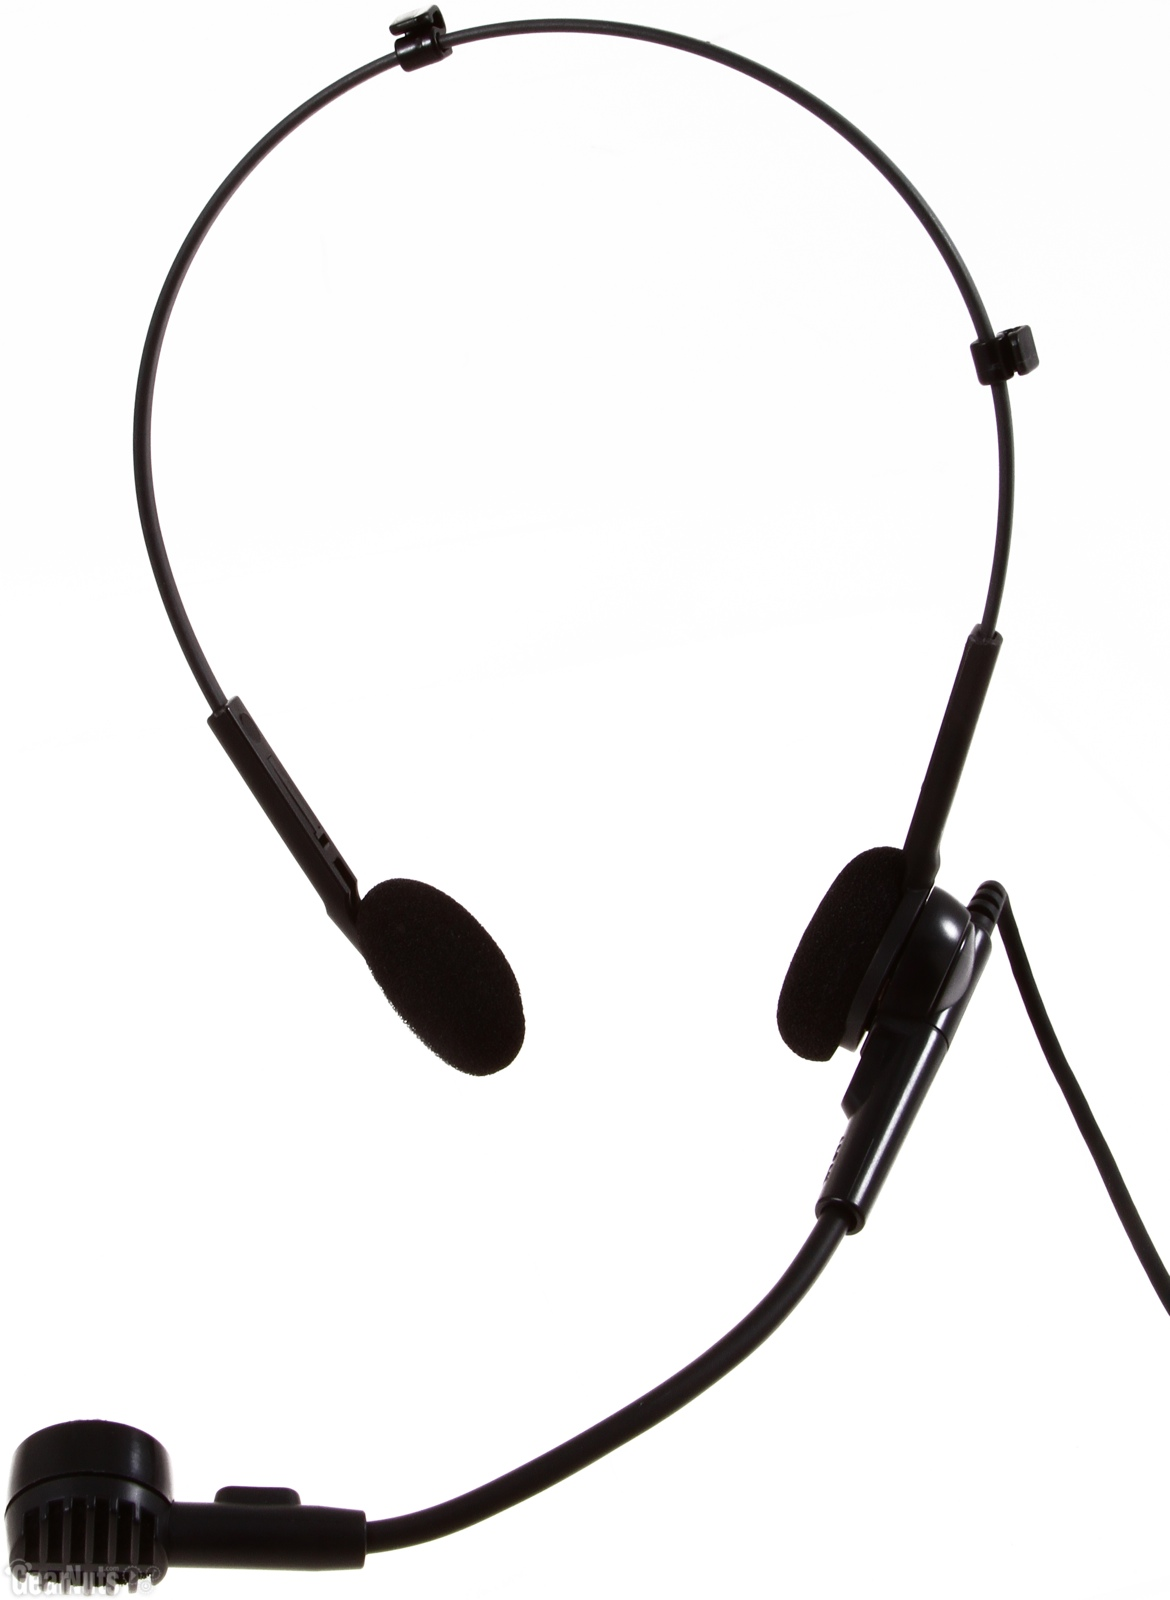 Audio Technica Pro 8HEX Wired Headworn Mic with XLR Connector